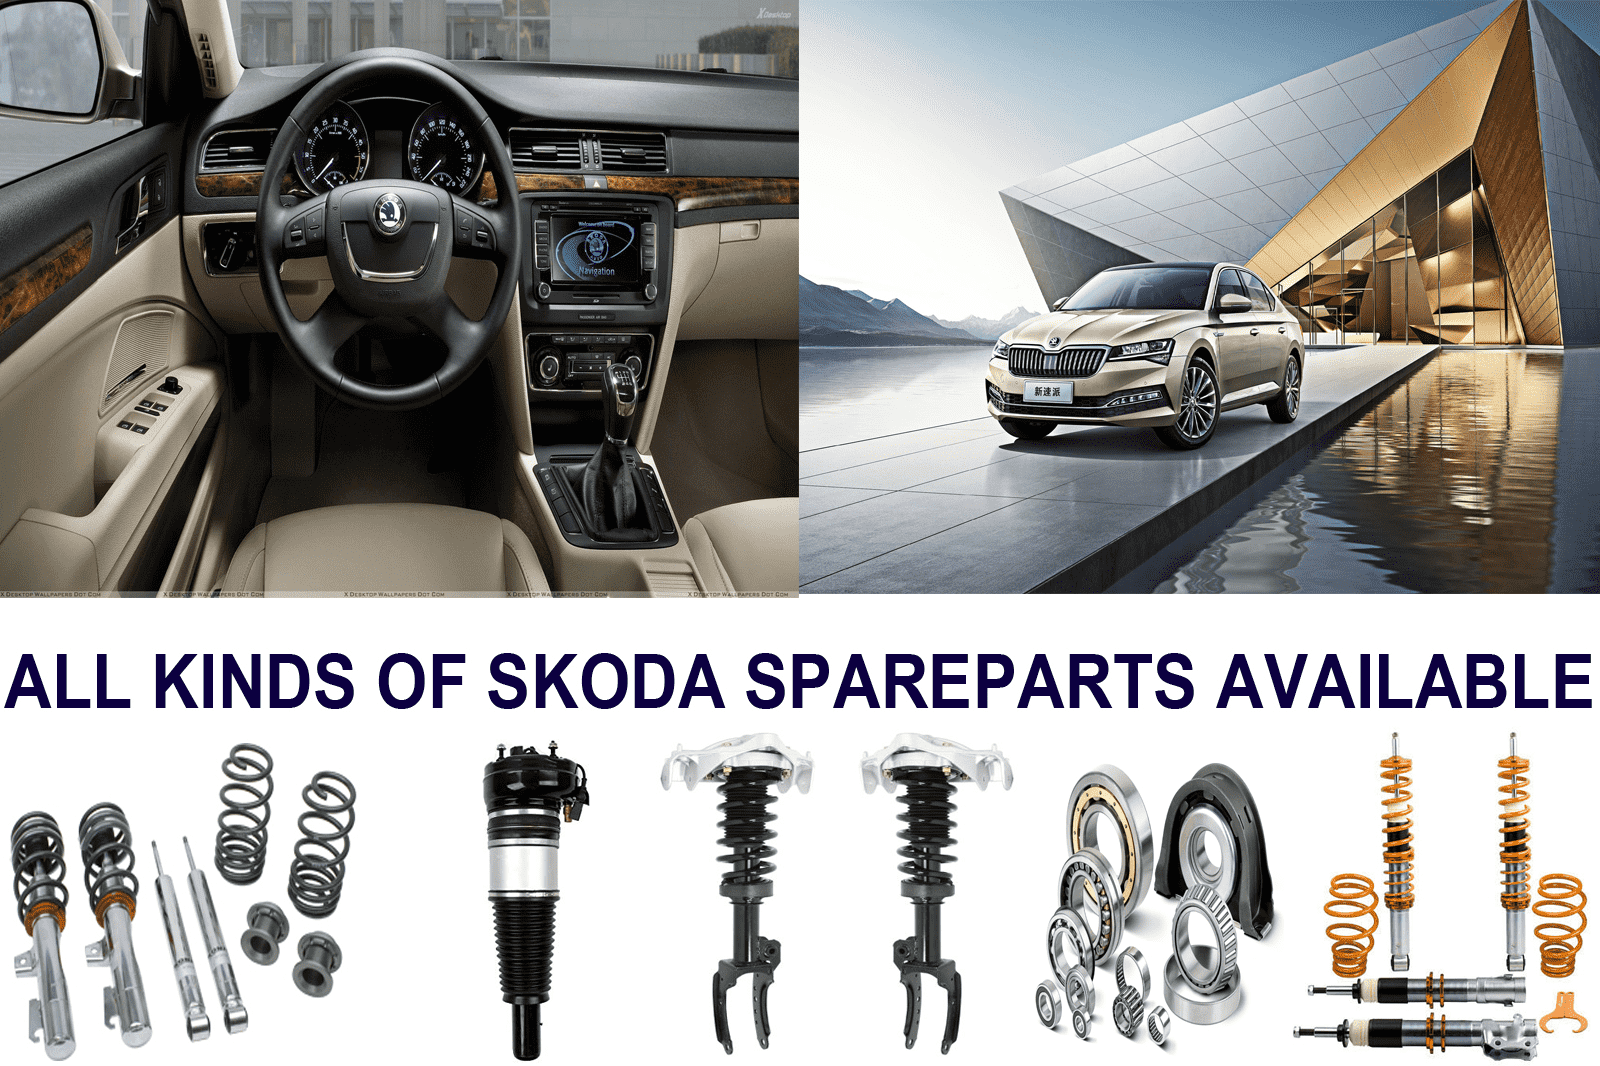 All Types of Skoda Parts